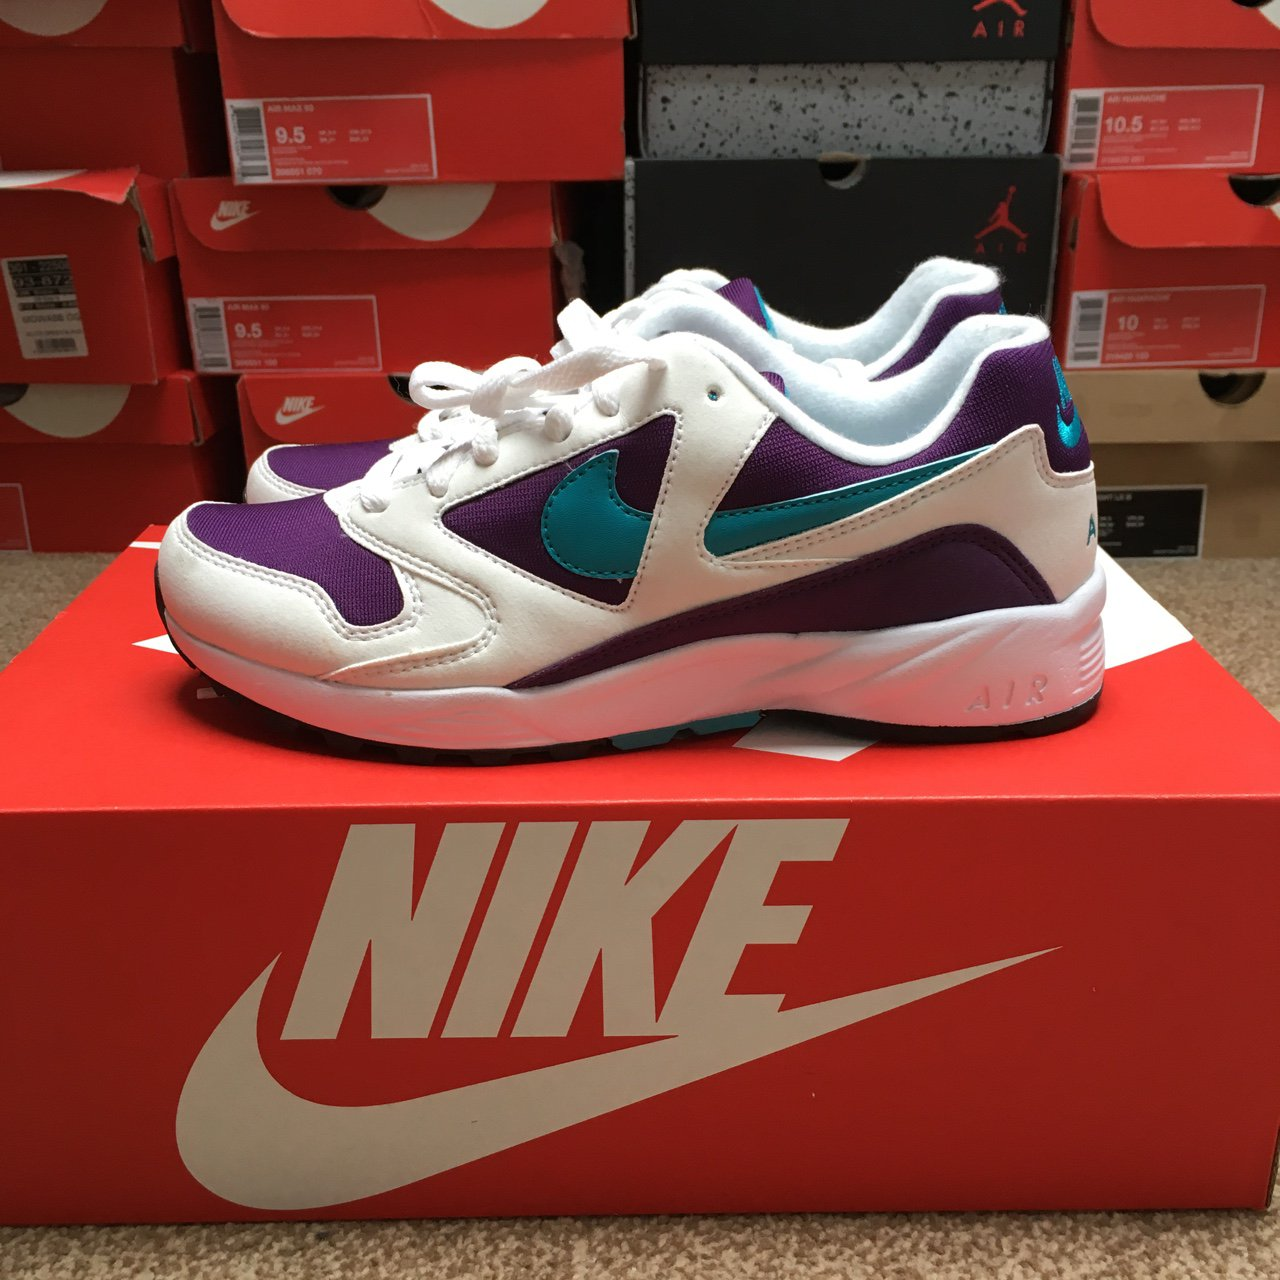 official photos 64289 727f7 nike air icarus vintage collection